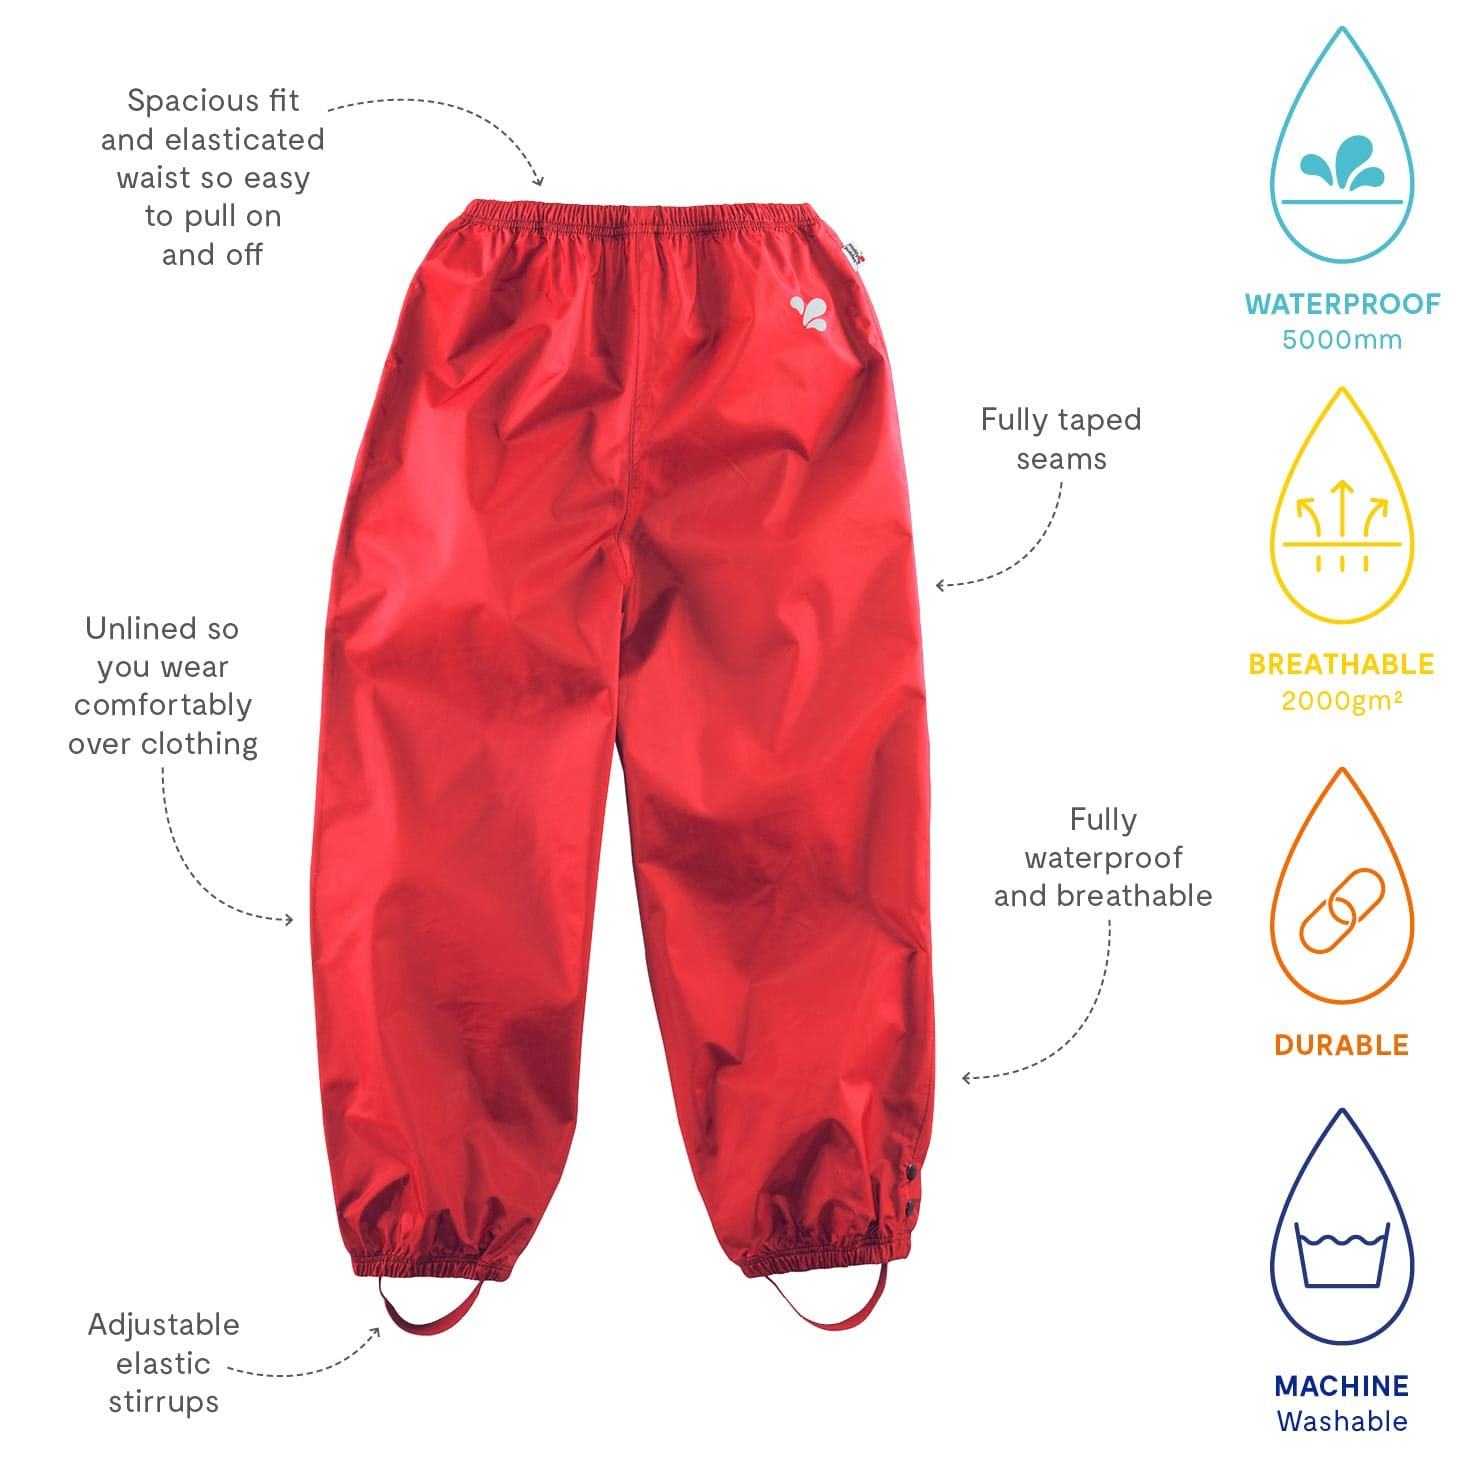 1a76fcc21 Muddy Puddles Children's Originals Trousers Fully Waterproof Rain Proof  Windproof Breathable Durable Underfoot Stirrup Taped Seams Spacious Fit  Elasticated ...